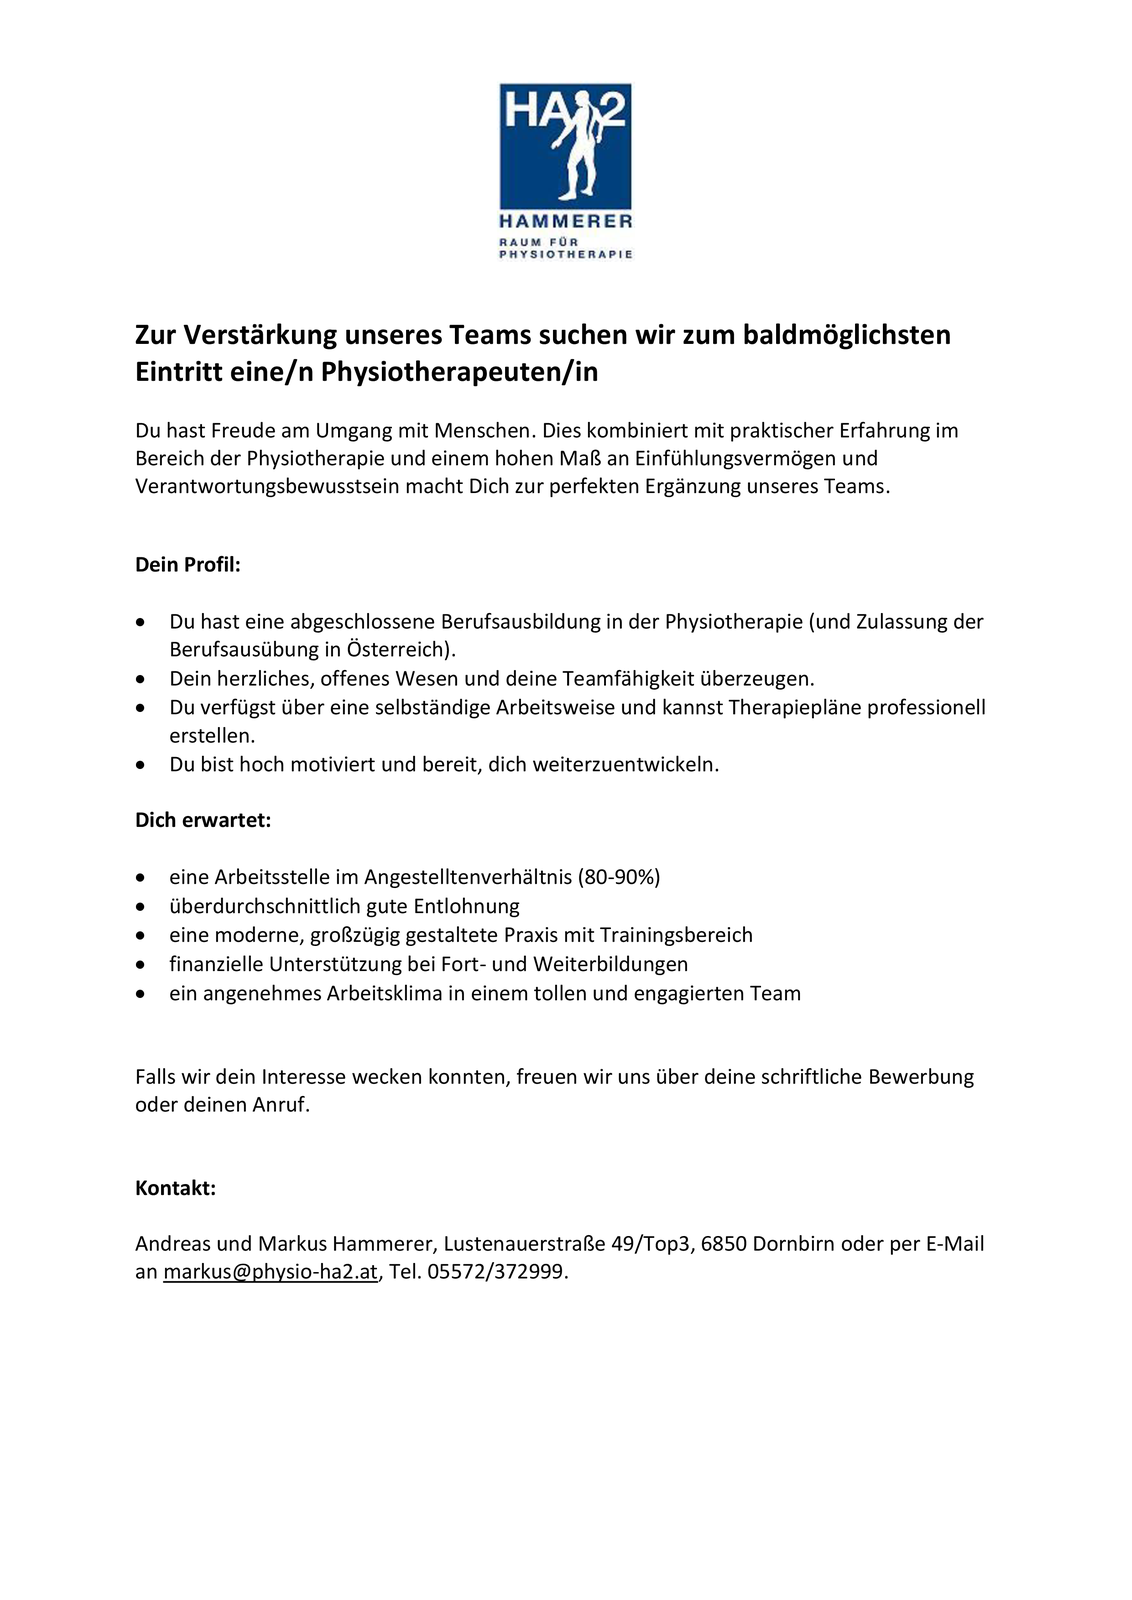 Physiotherapeut/in gesucht (80-90%)